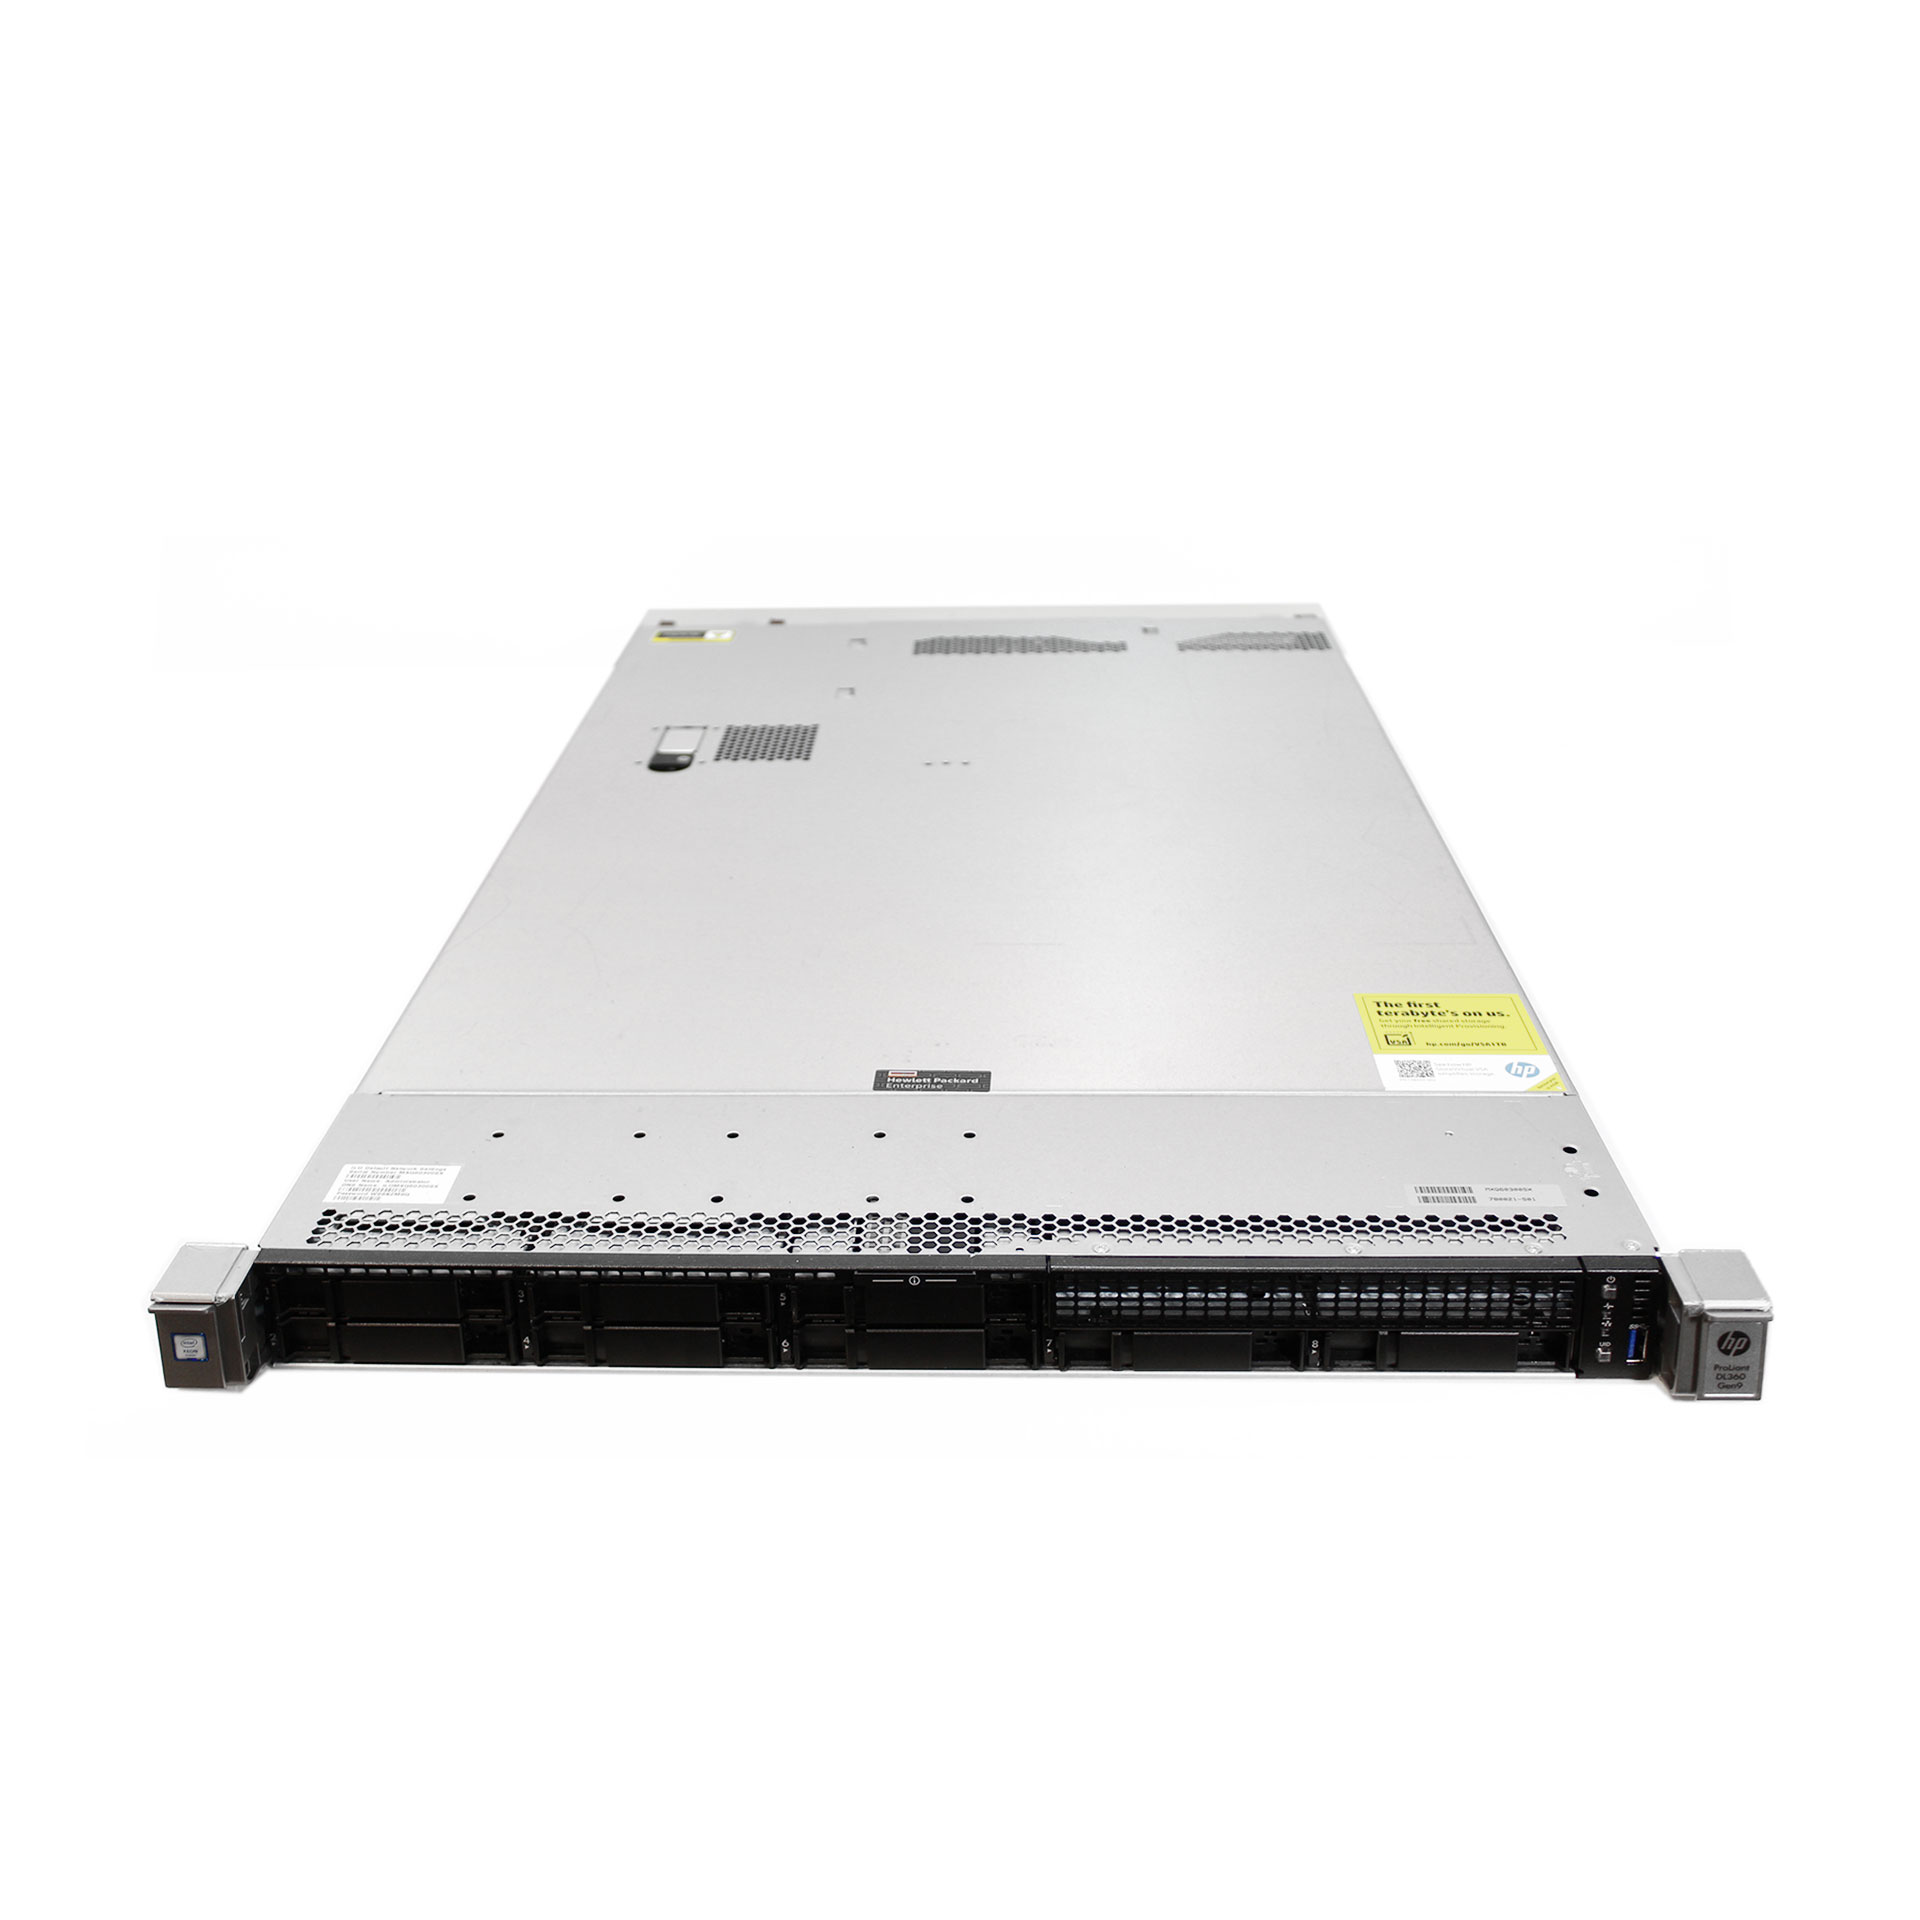 HP SB ProLiant DL360 Gen9 U1 E5-2690V3 32GB 780021-S01 Server